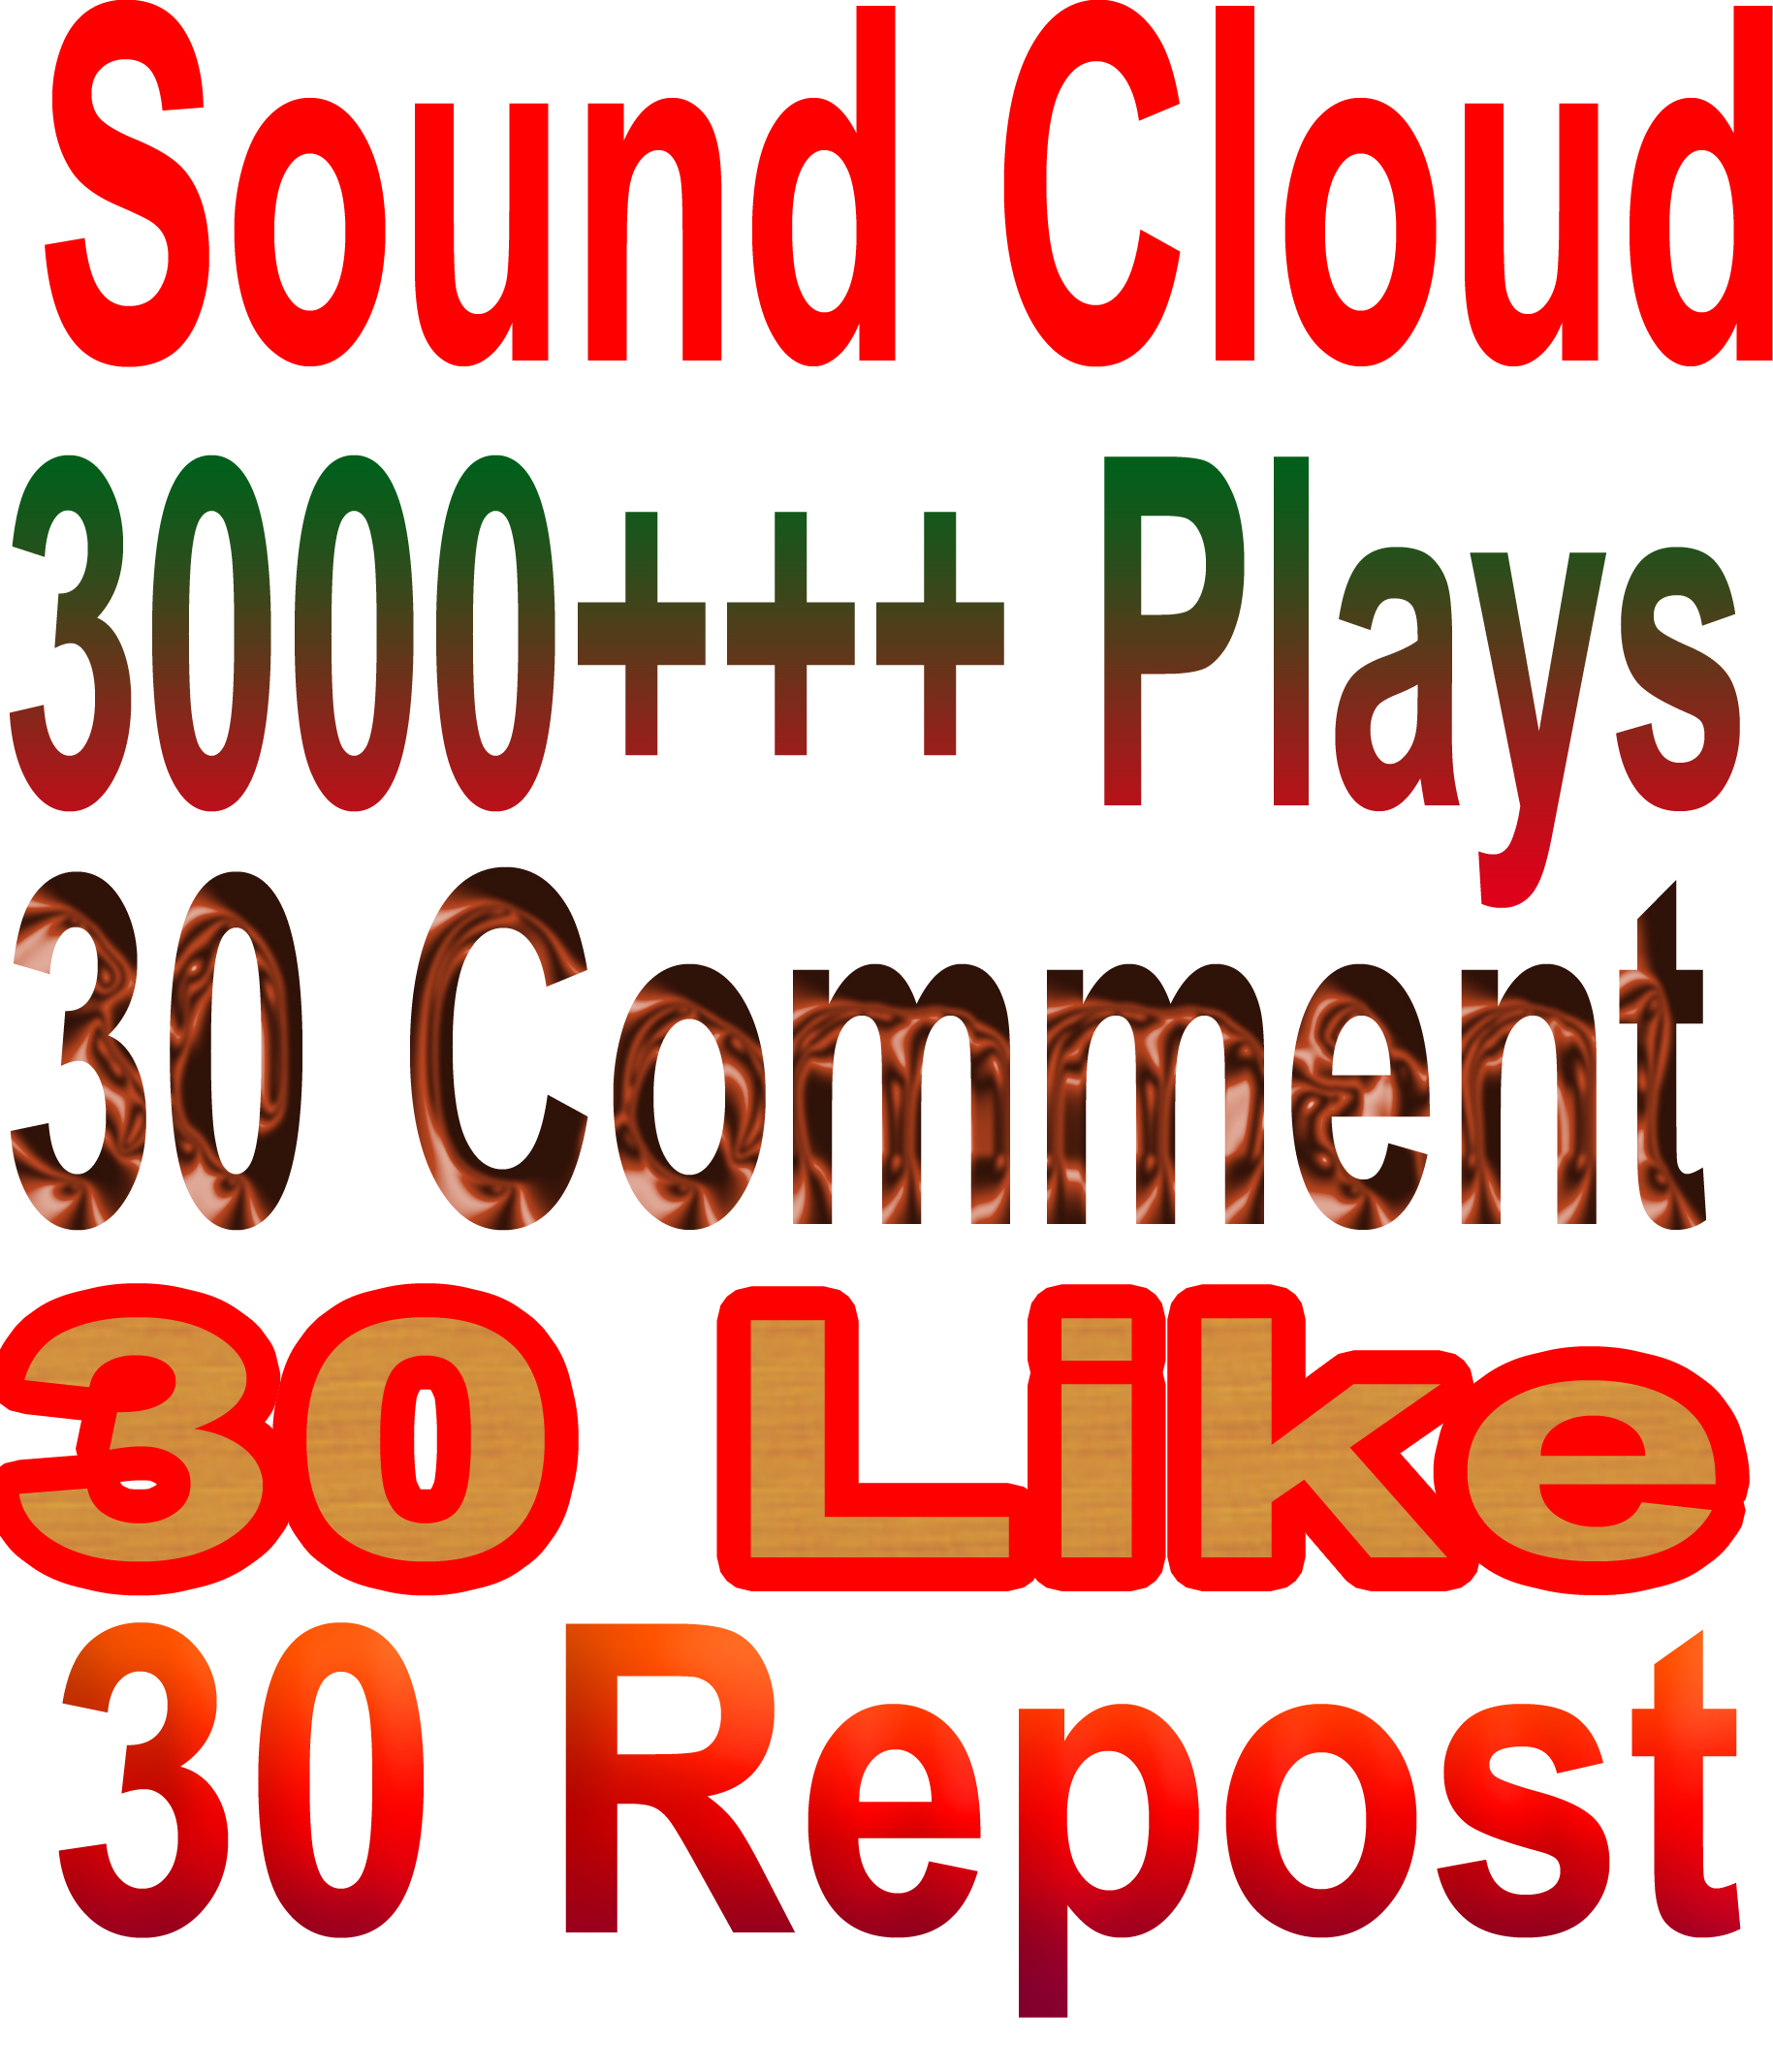 I will give you real 3000 SoundCloud Plays,30 Comment + 30 Like + 30 Repost